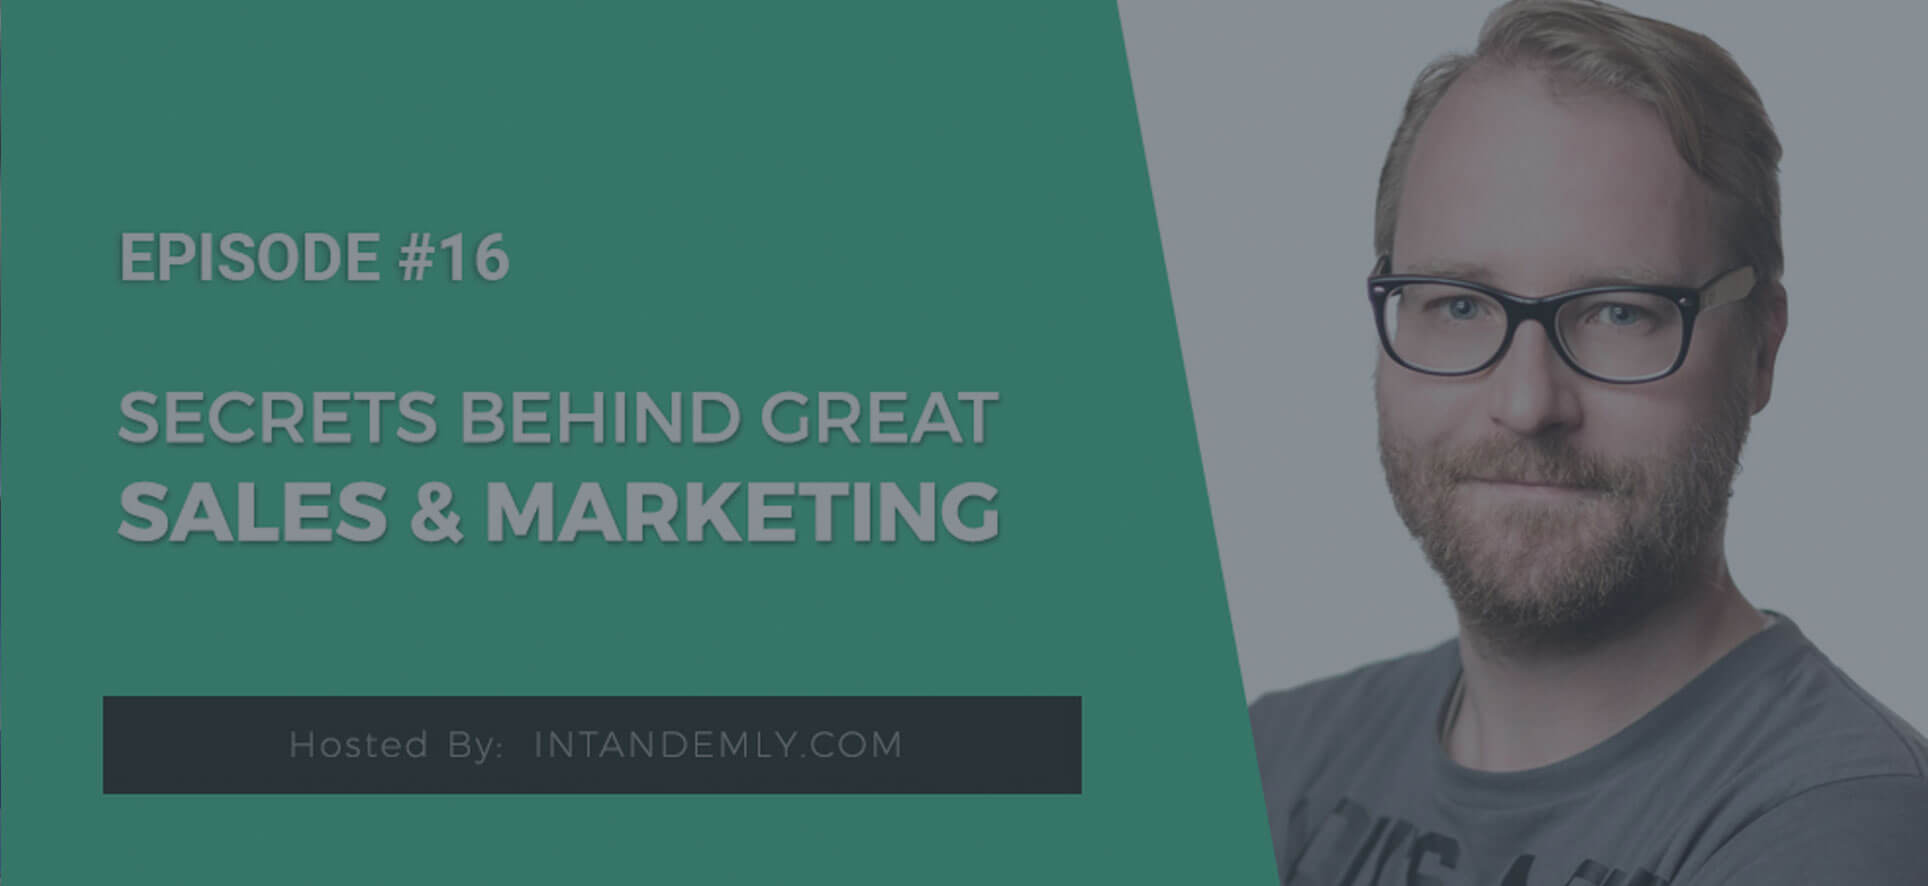 Secrets Behind Great Sales and Marketing with Hans van Gent